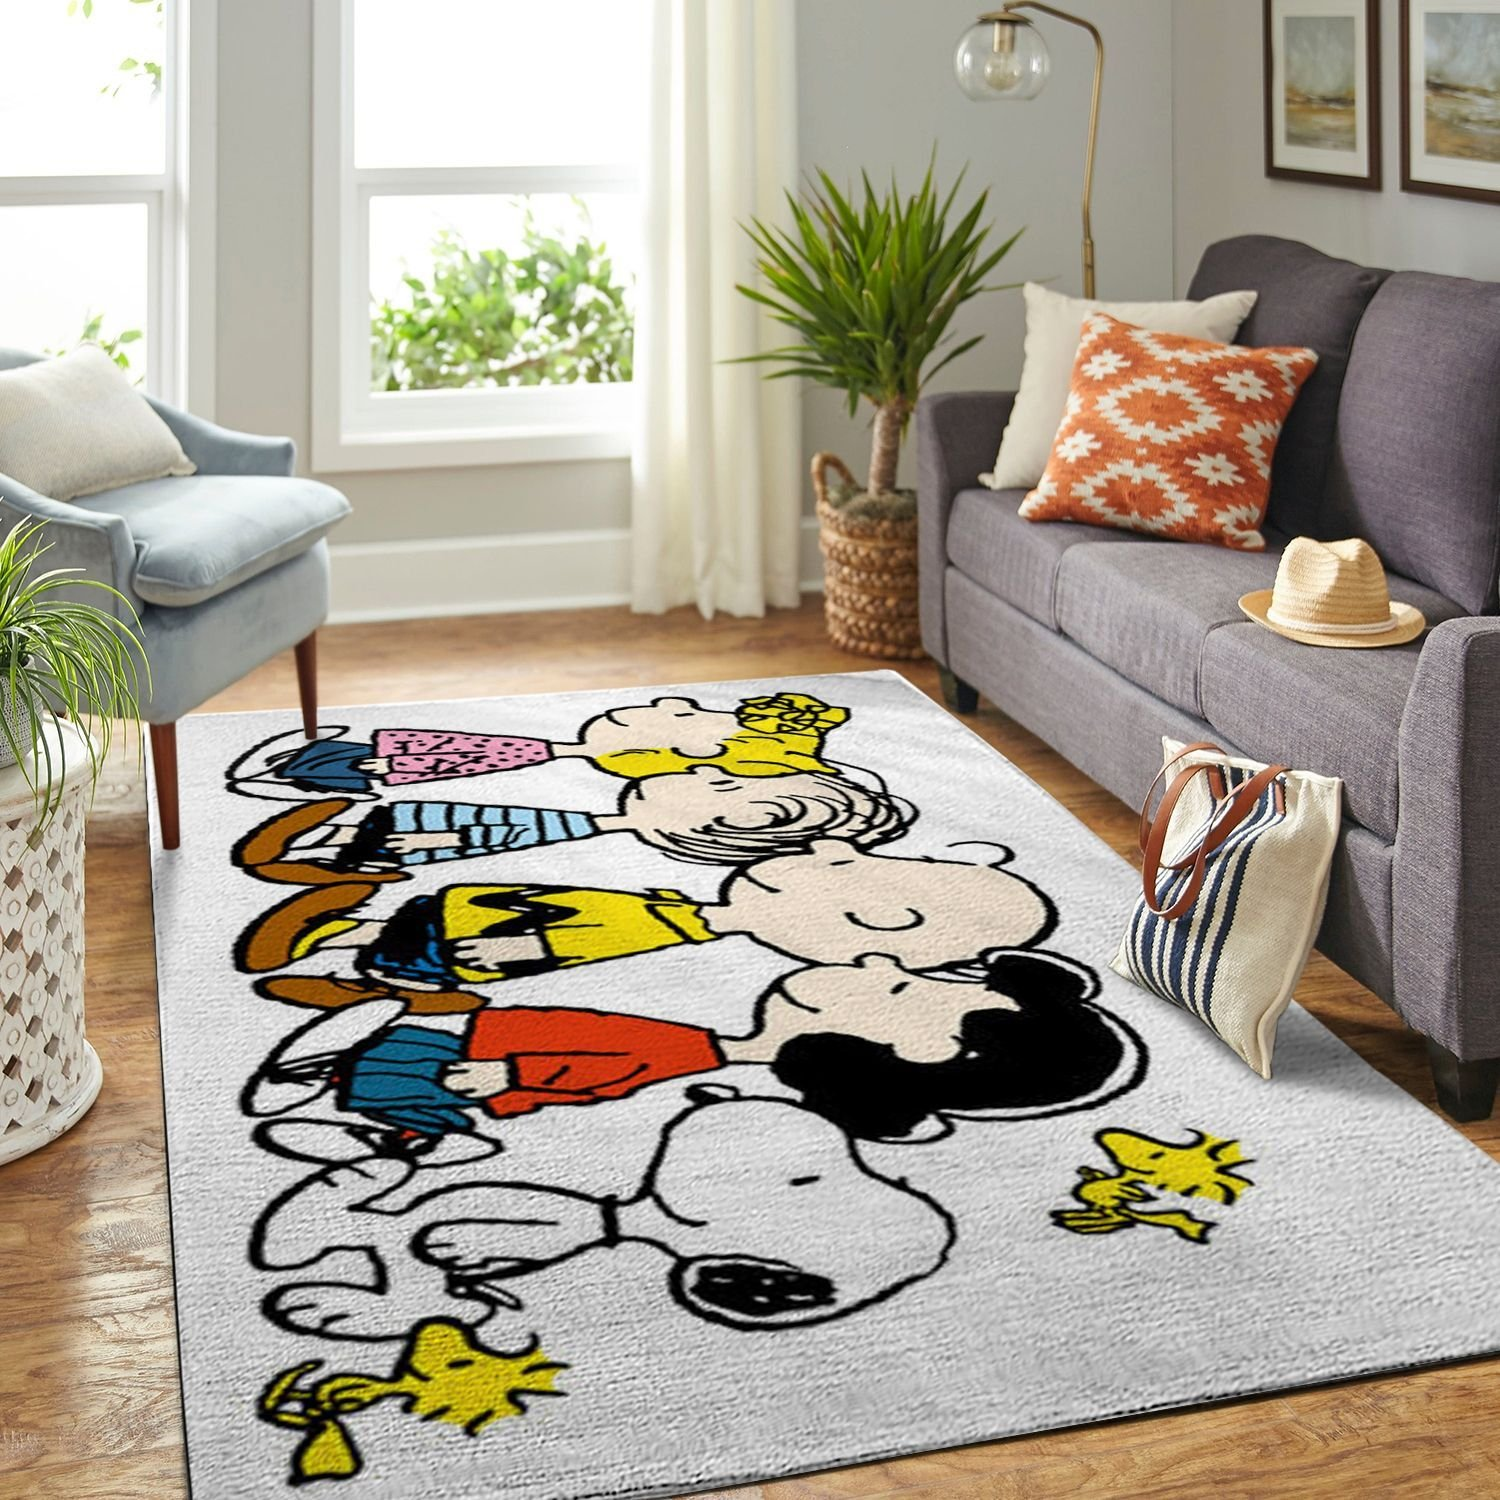 Amazon Snoopy Dog And Peanuts Comic Living Room Area No6559 Rug